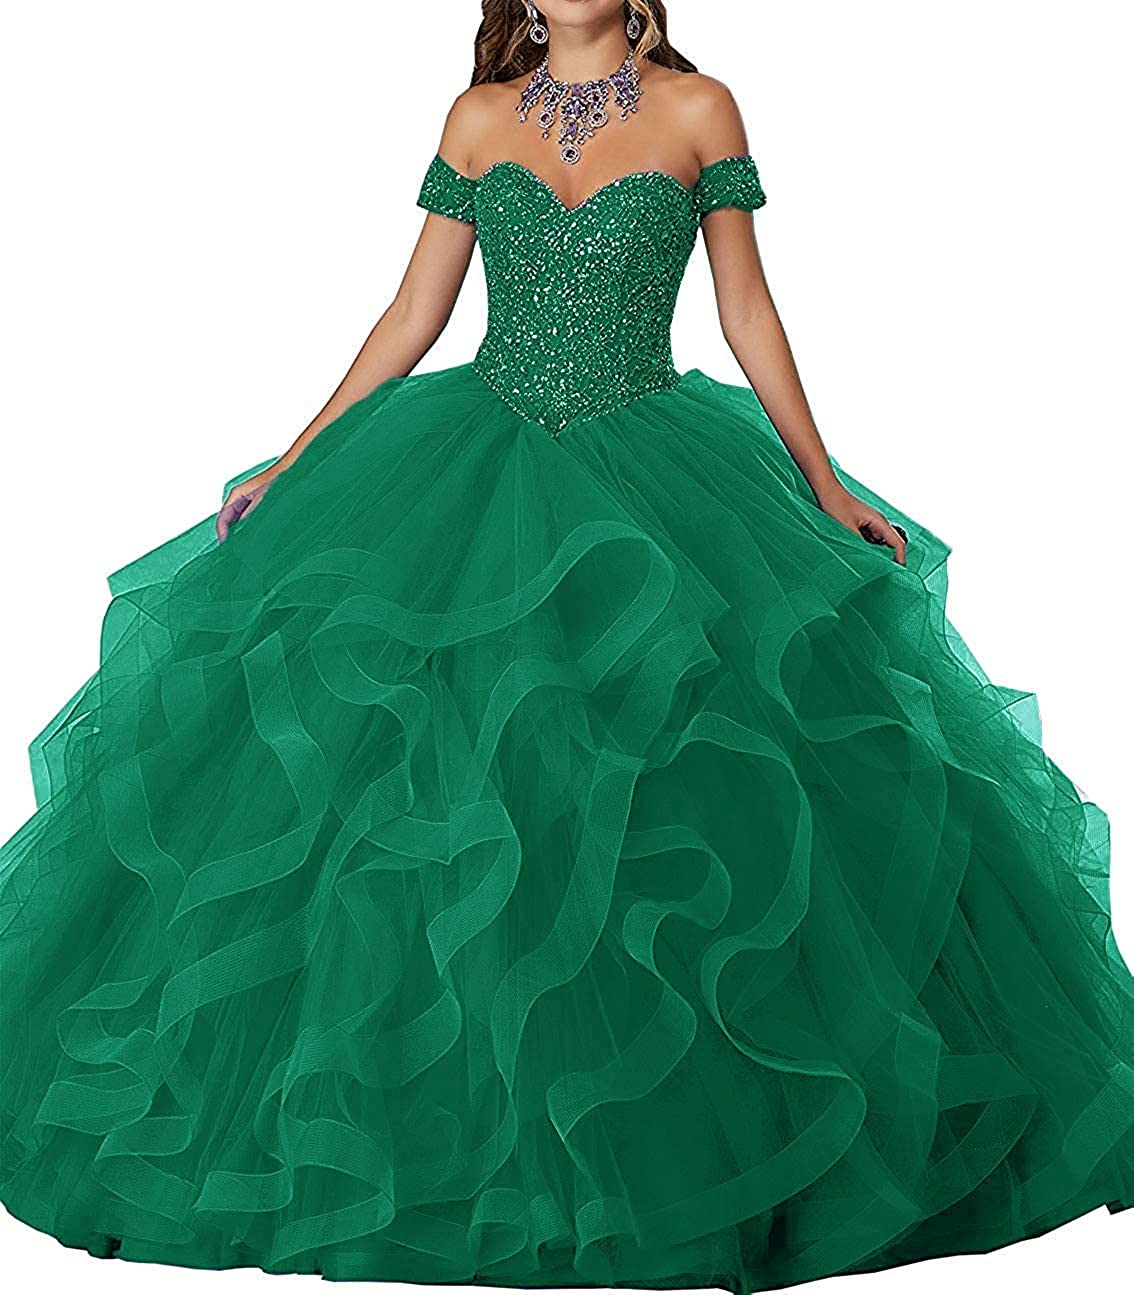 Dark Green ASBridal Quinceanera Dress Sweet 16 Formal Prom Party Dresses Crystals Beaded Ball Gowns